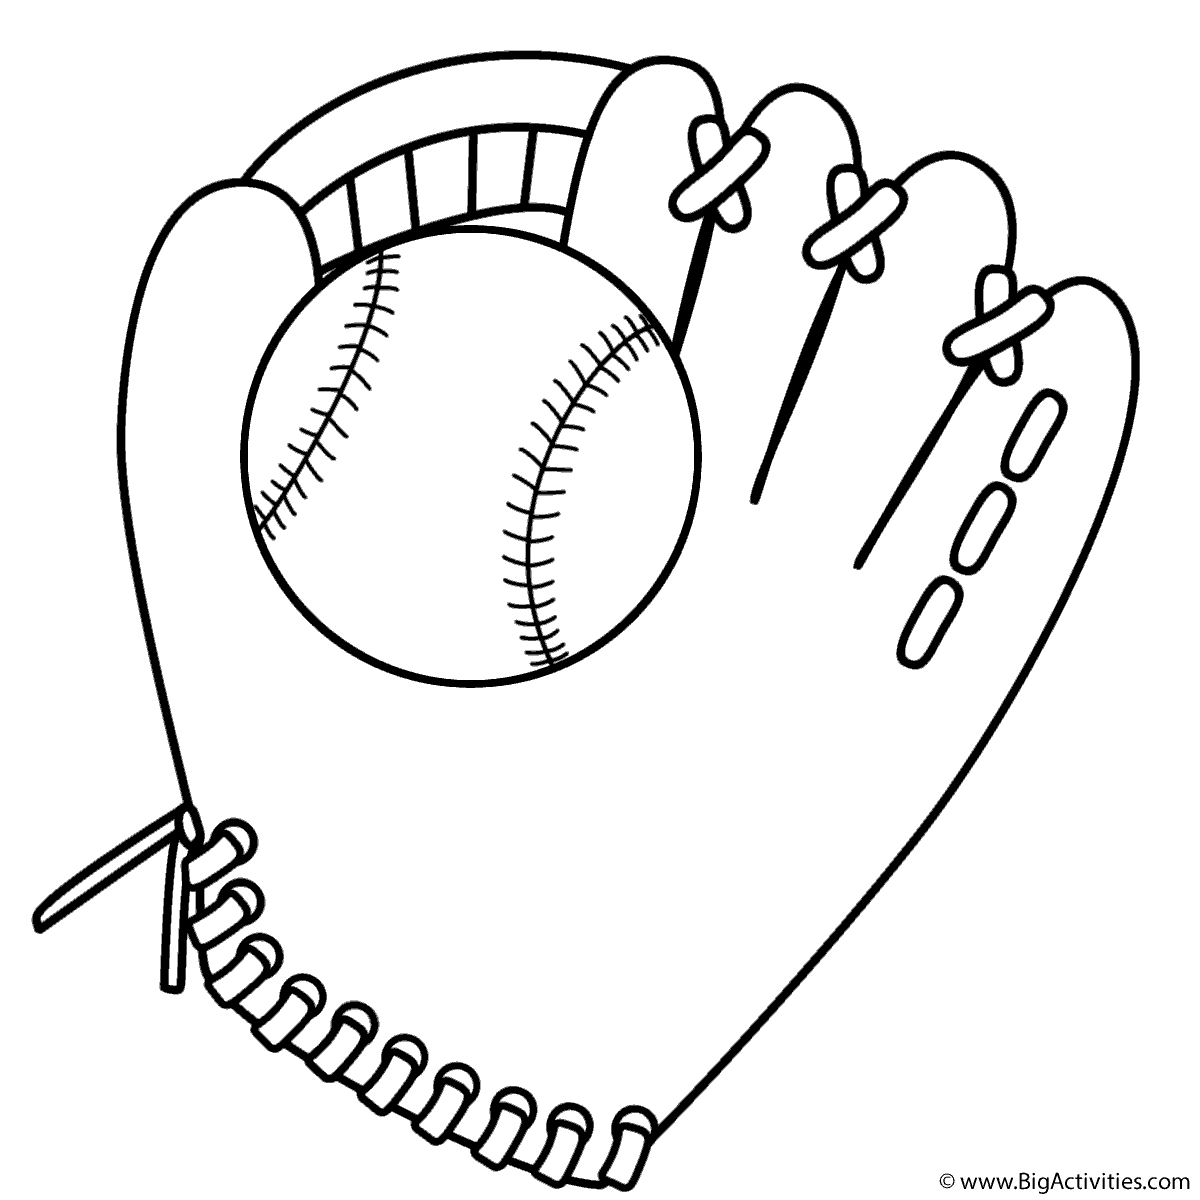 Baseball Glove And Ball Coloring Page Sports Baseball Glove Baseball Coloring Pages Baseball Card Template